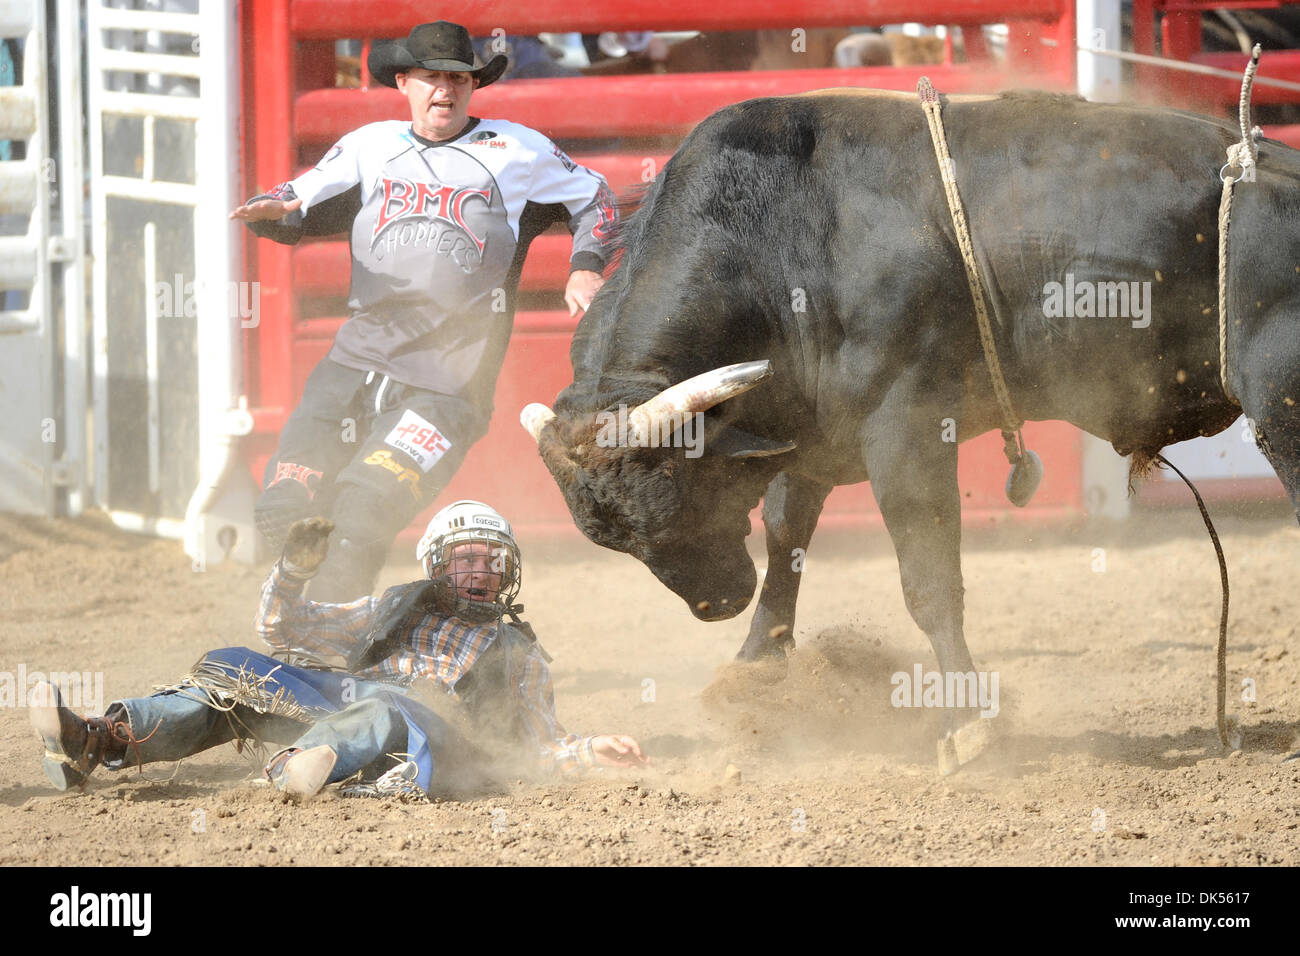 Apr. 23, 2011 - Clovis, California, U.S - Brady Scott Williams of Snelling, CA gets bucked off Smokin' Aces at the Clovis Rodeo. (Credit Image: © Matt Cohen/Southcreek Global/ZUMAPRESS.com) - Stock Image